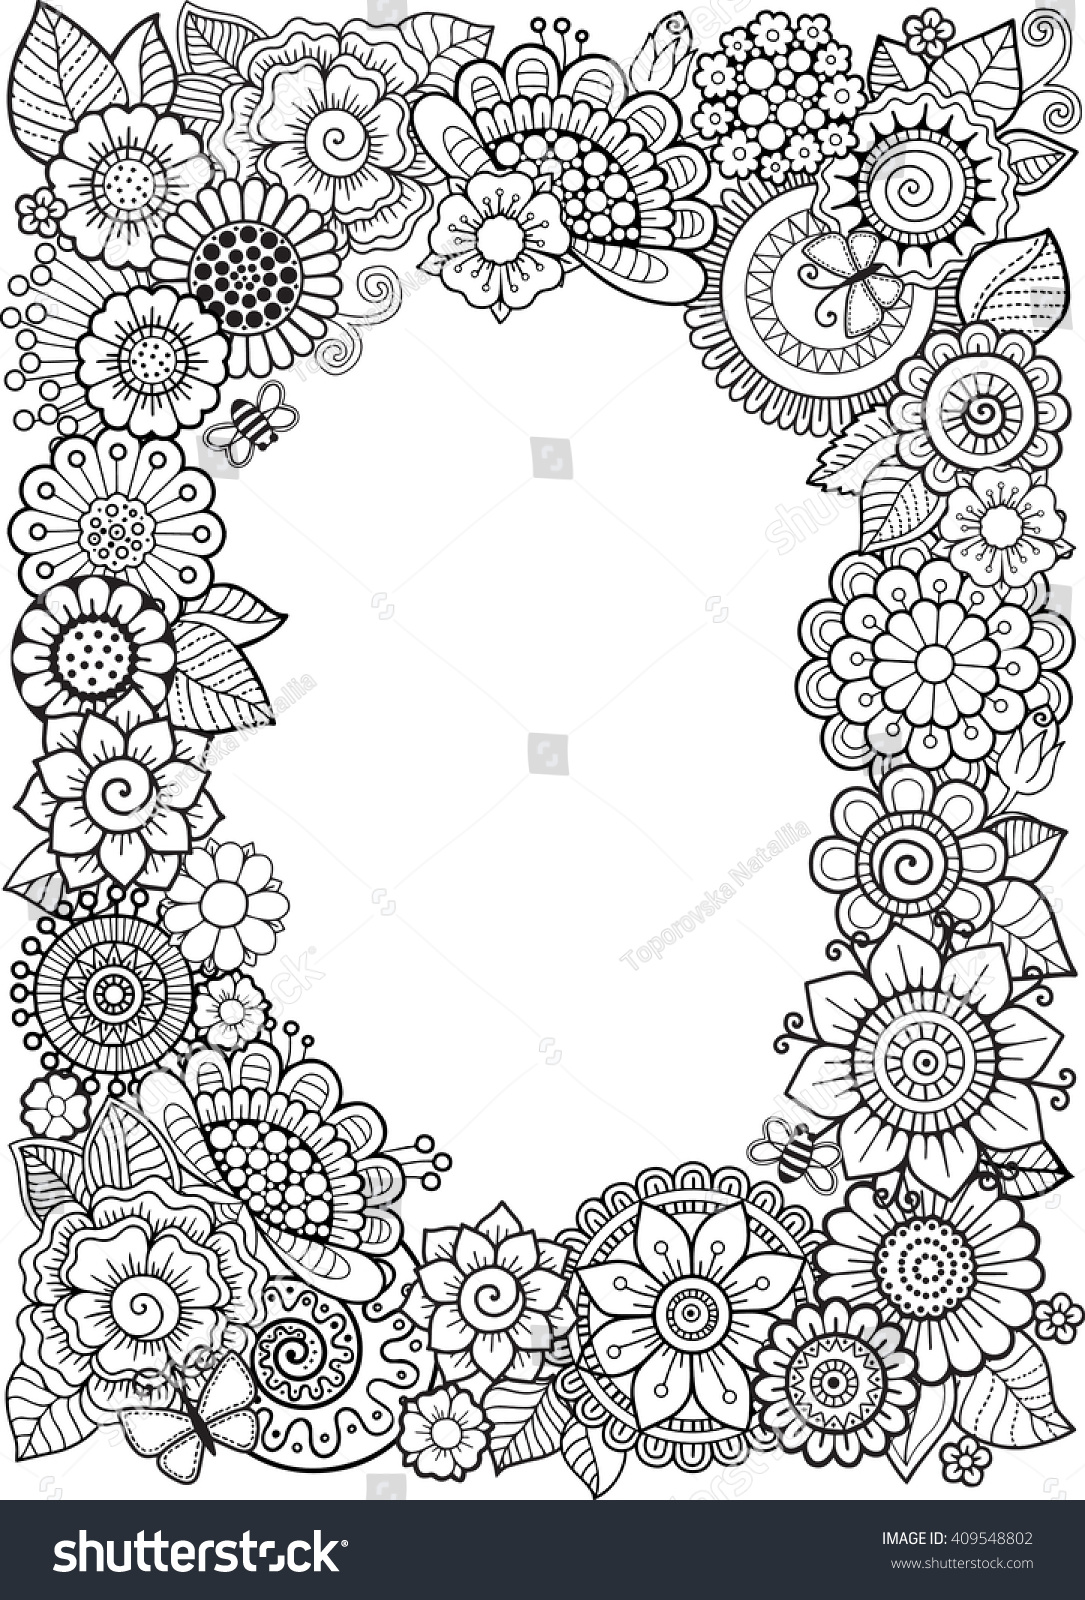 Coloring Book Antistress Adults Isolated Vector Stock Vector